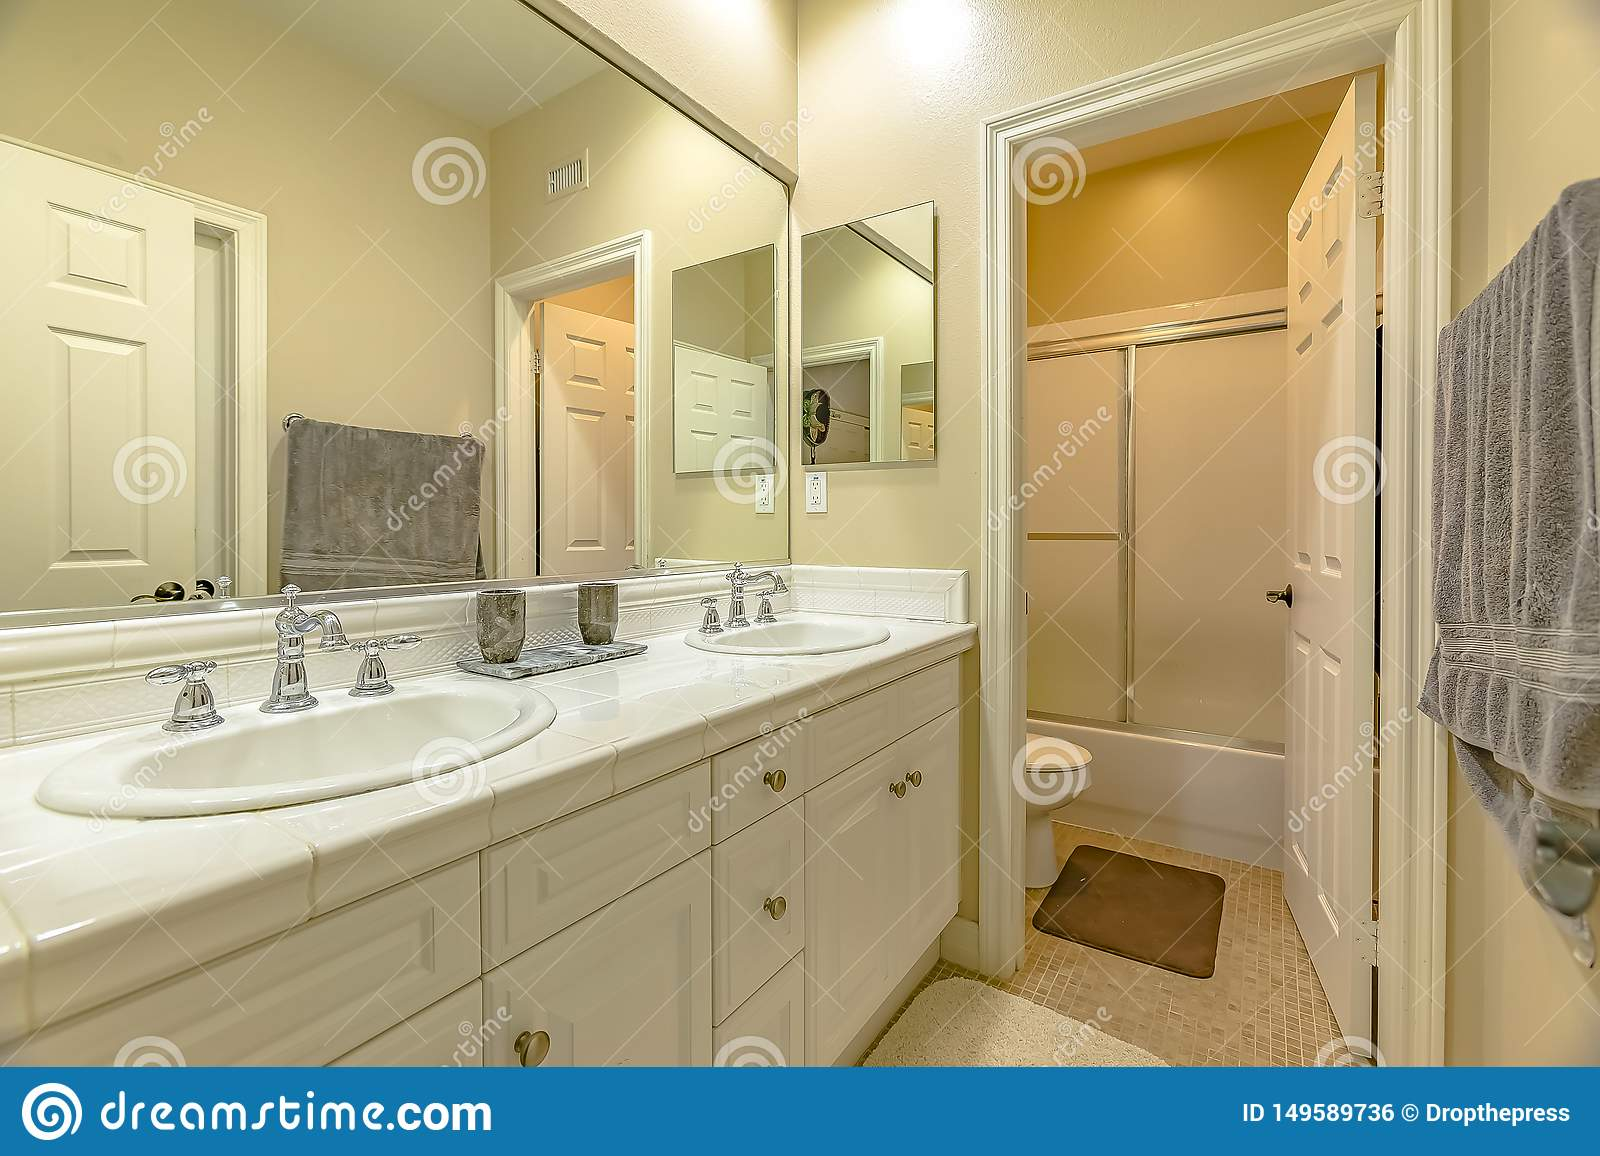 Interior Of A Small Bathroom With A Double Sink Vanity Area And Wood Cabinets Stock Photo Image Of Inside Home 149589736